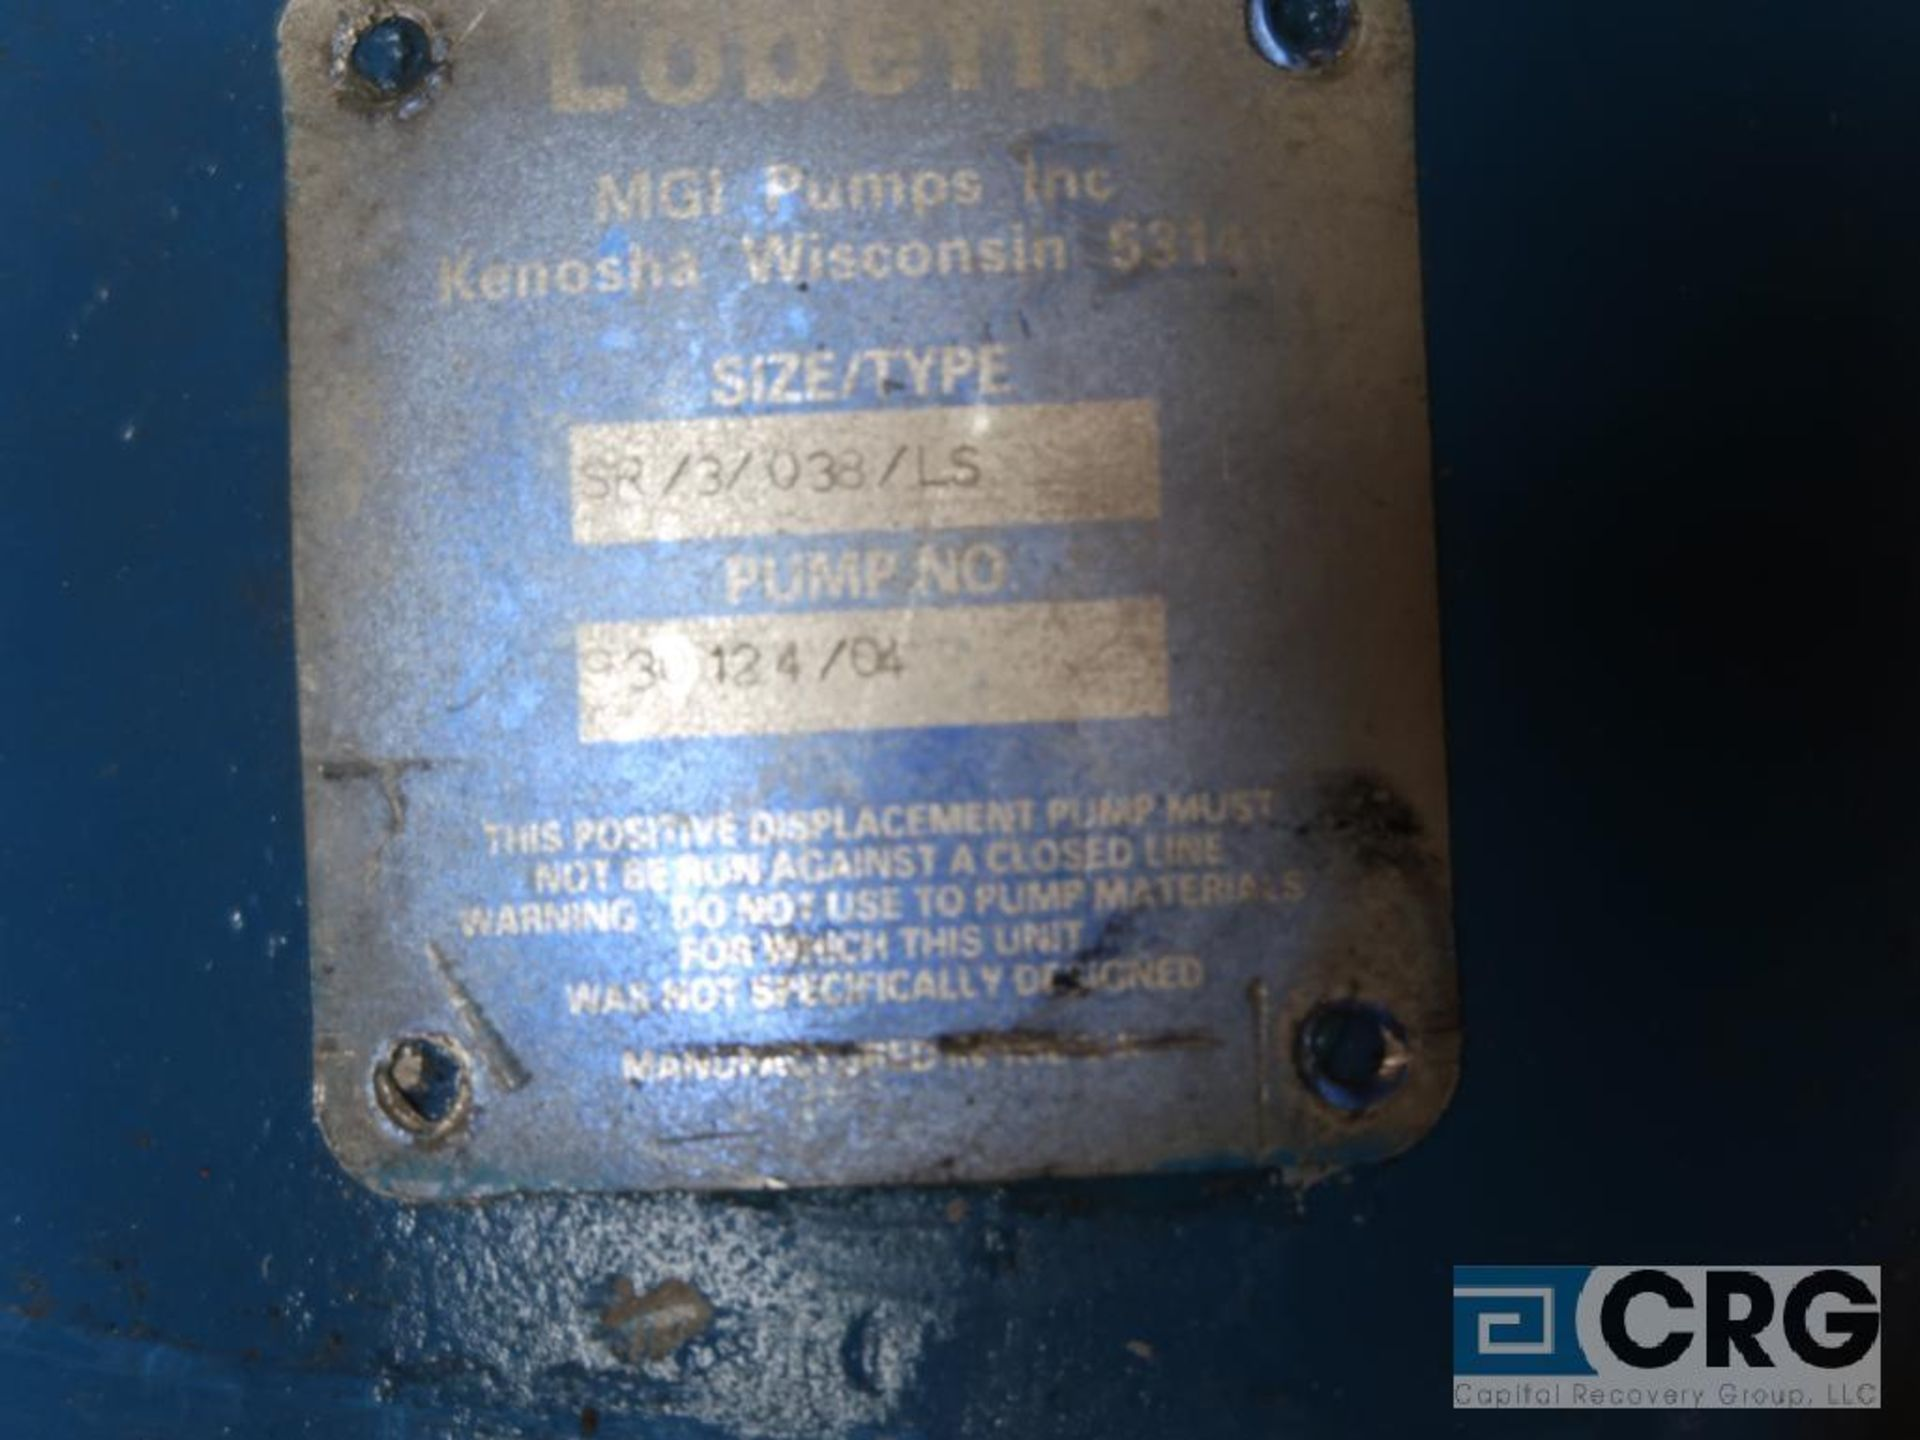 Waukesha 2 1/2 in. stainless positive displacement pump (Next Bay Cage Area) - Image 2 of 2